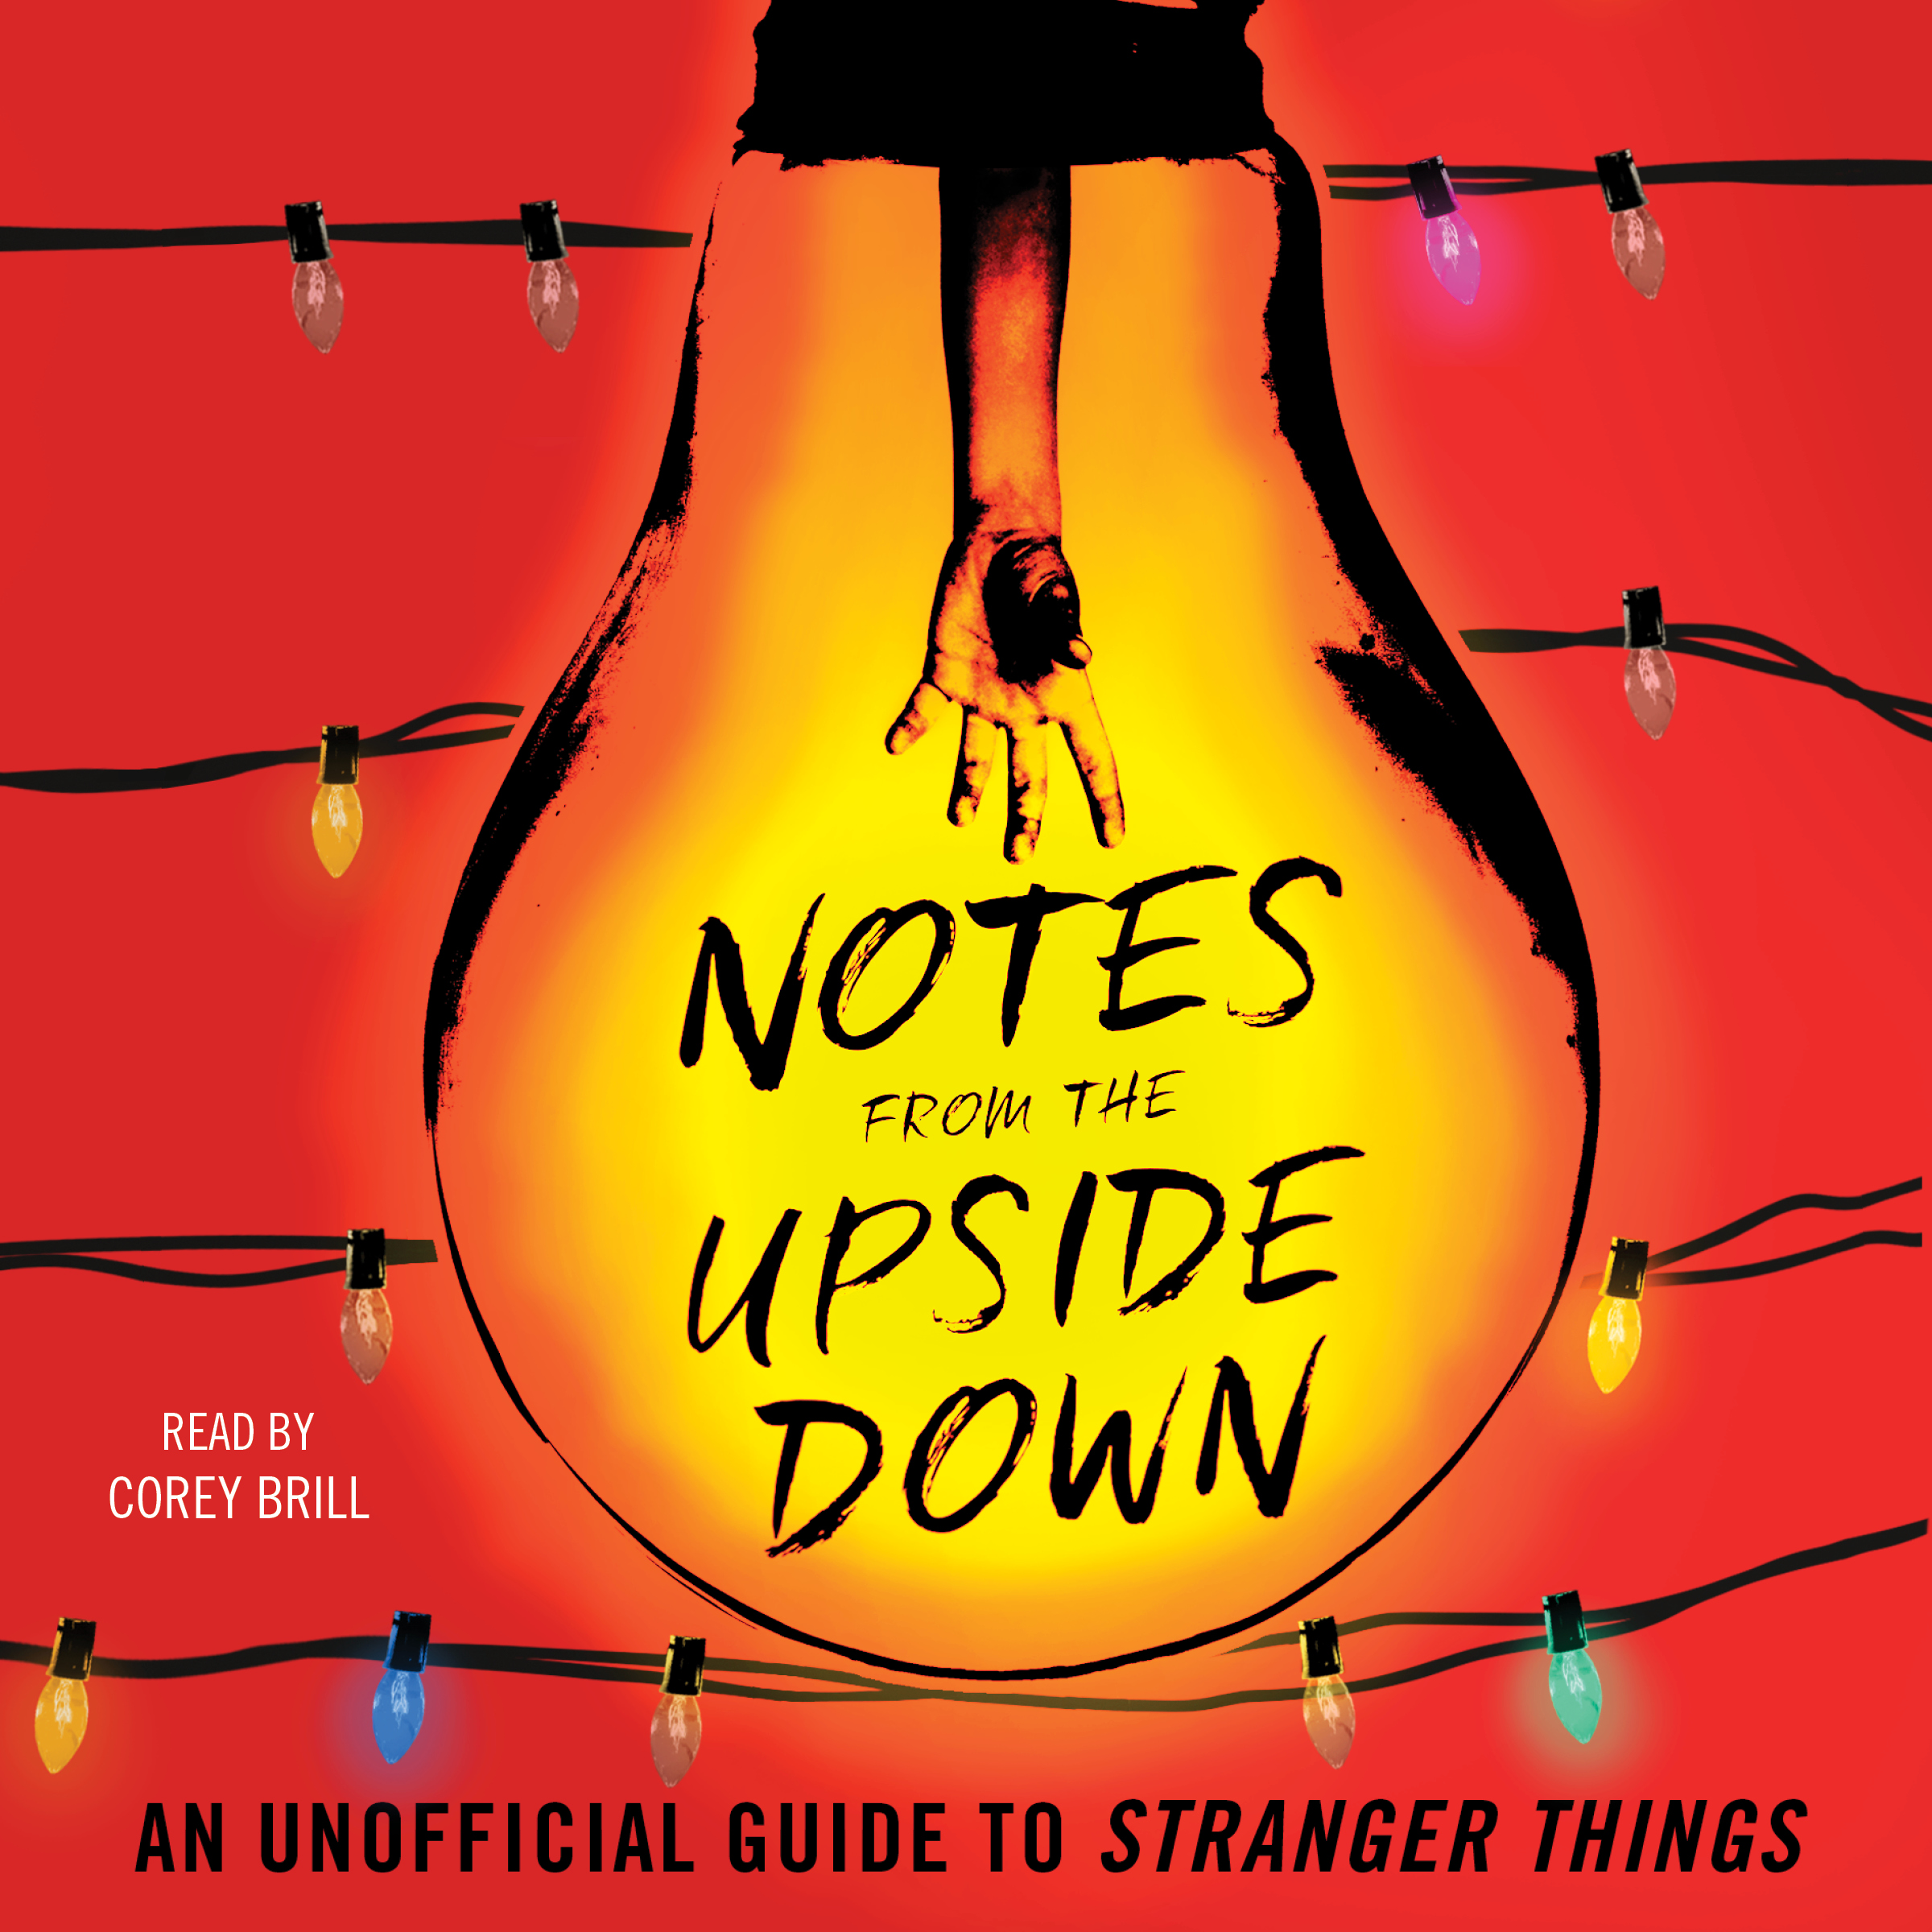 Notes from the upside down 9781508244943 hr